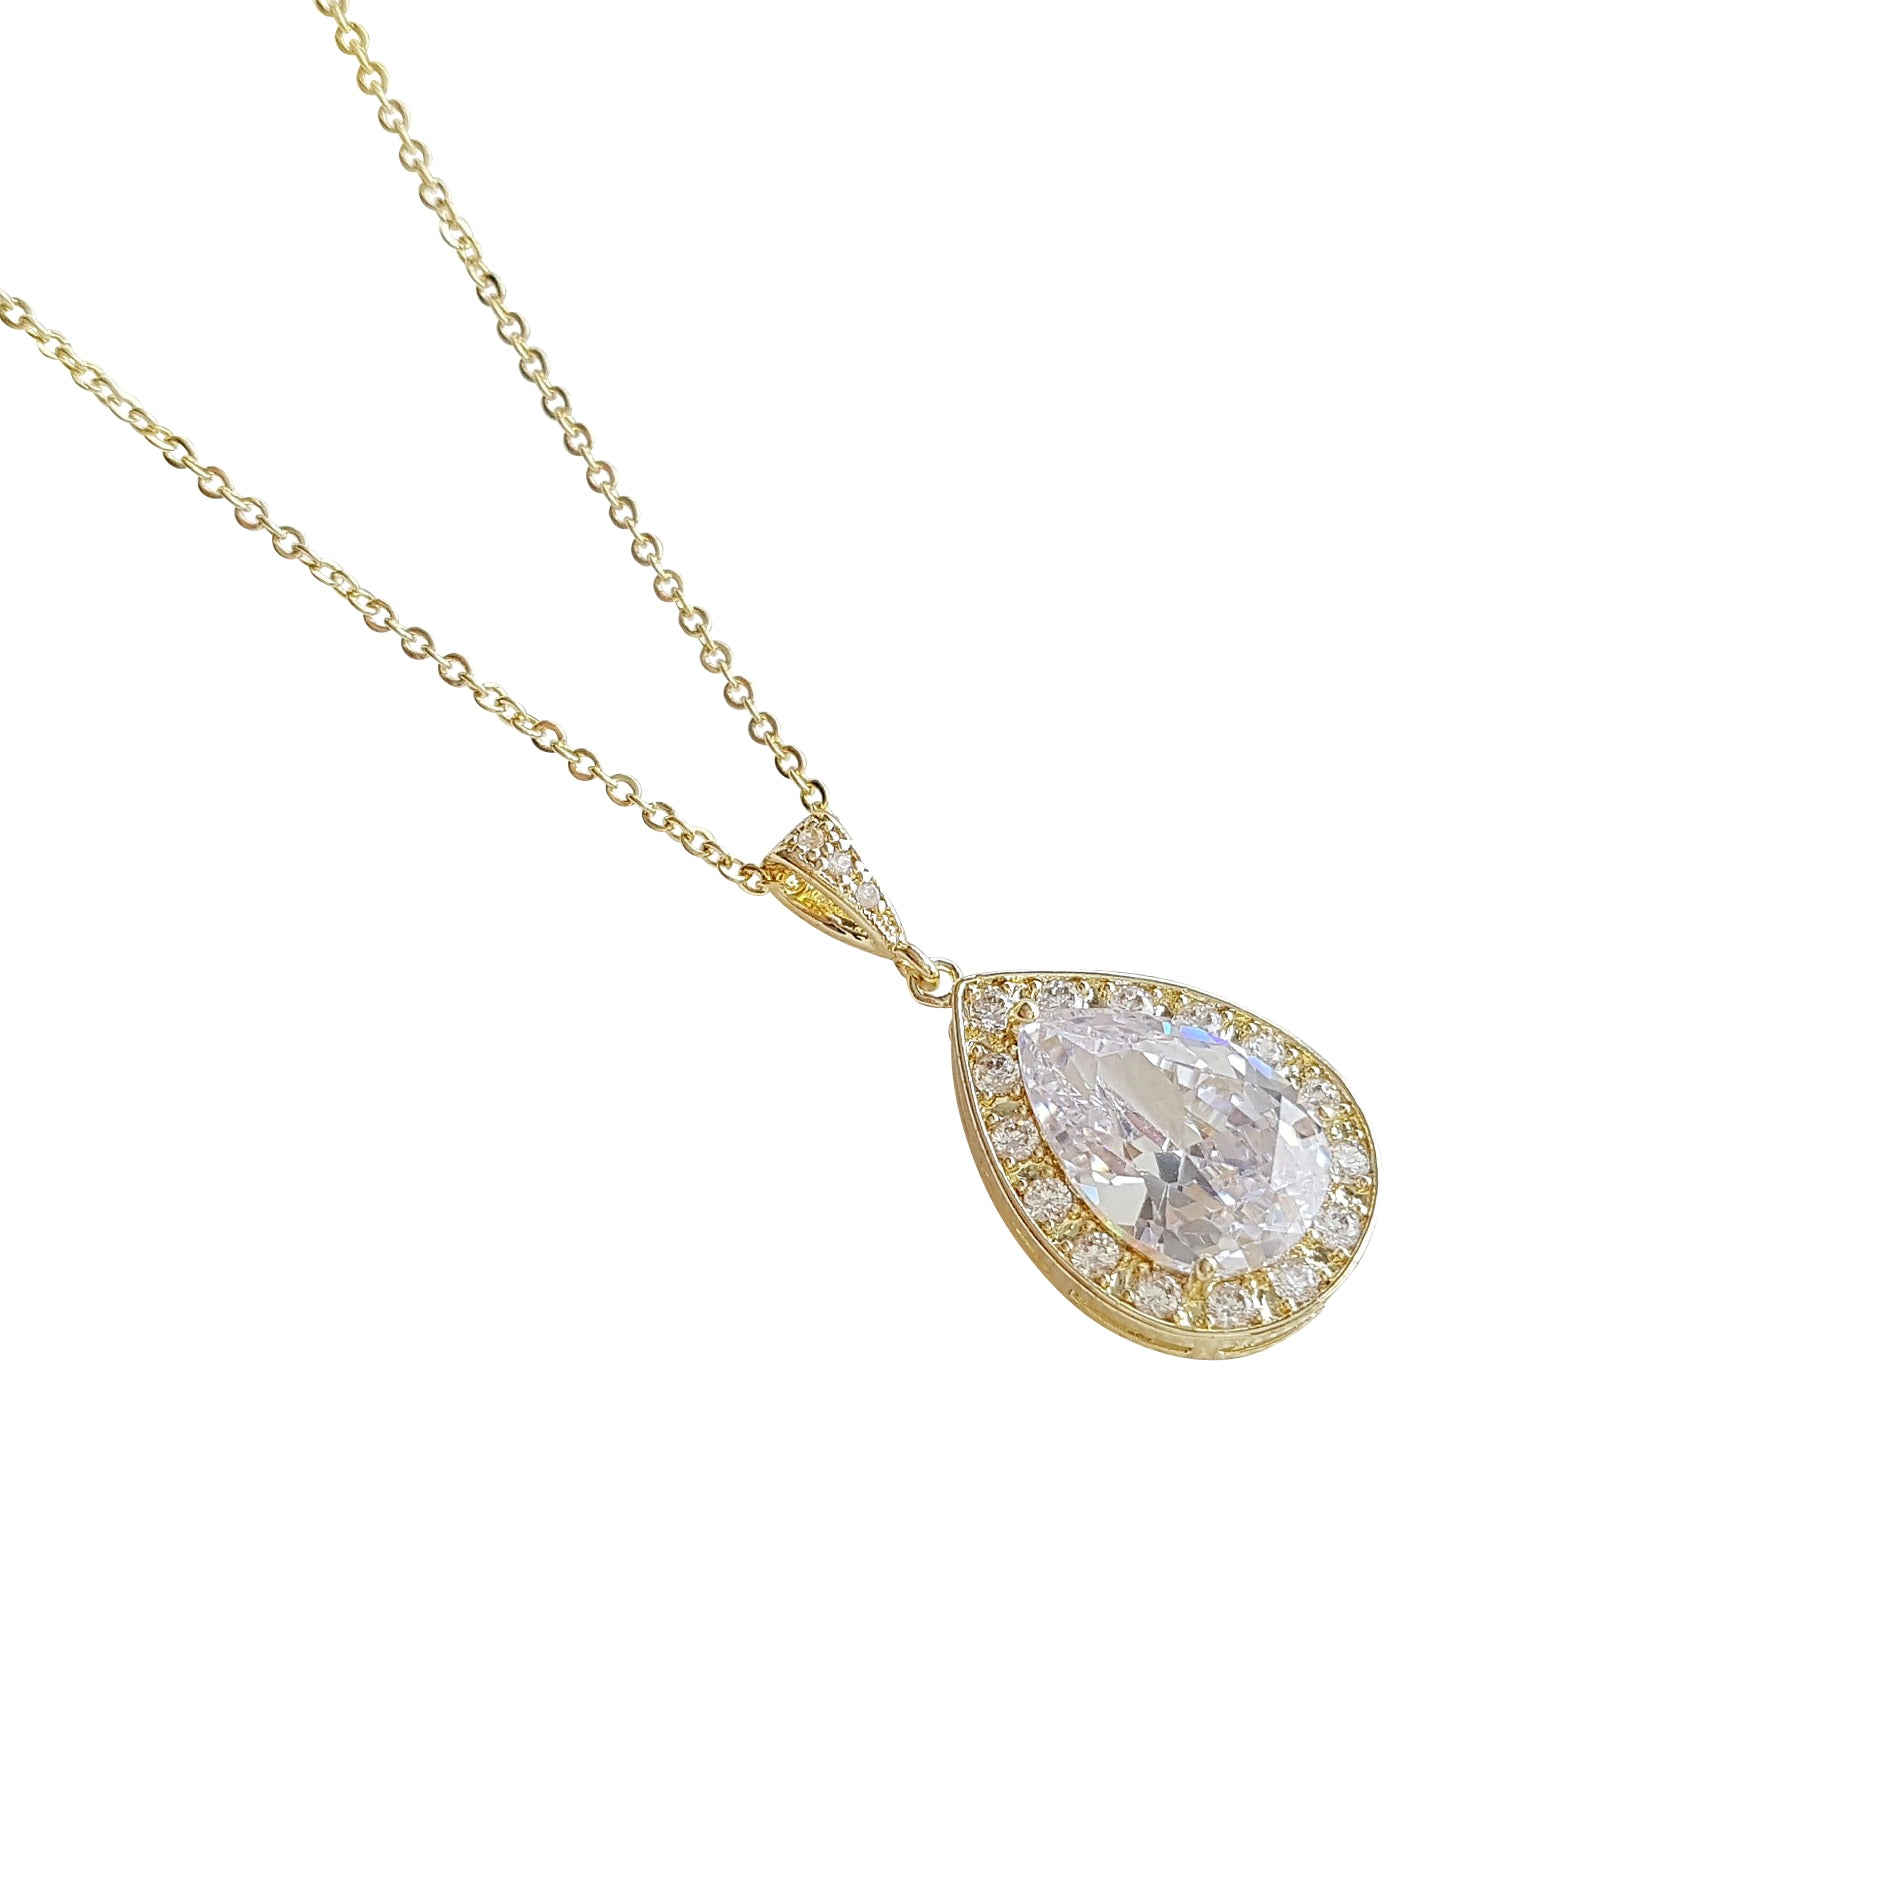 Teardrop Necklace in 14K Gold & Cubic Zirconia for Brides & Bridesmaids-Evelyn